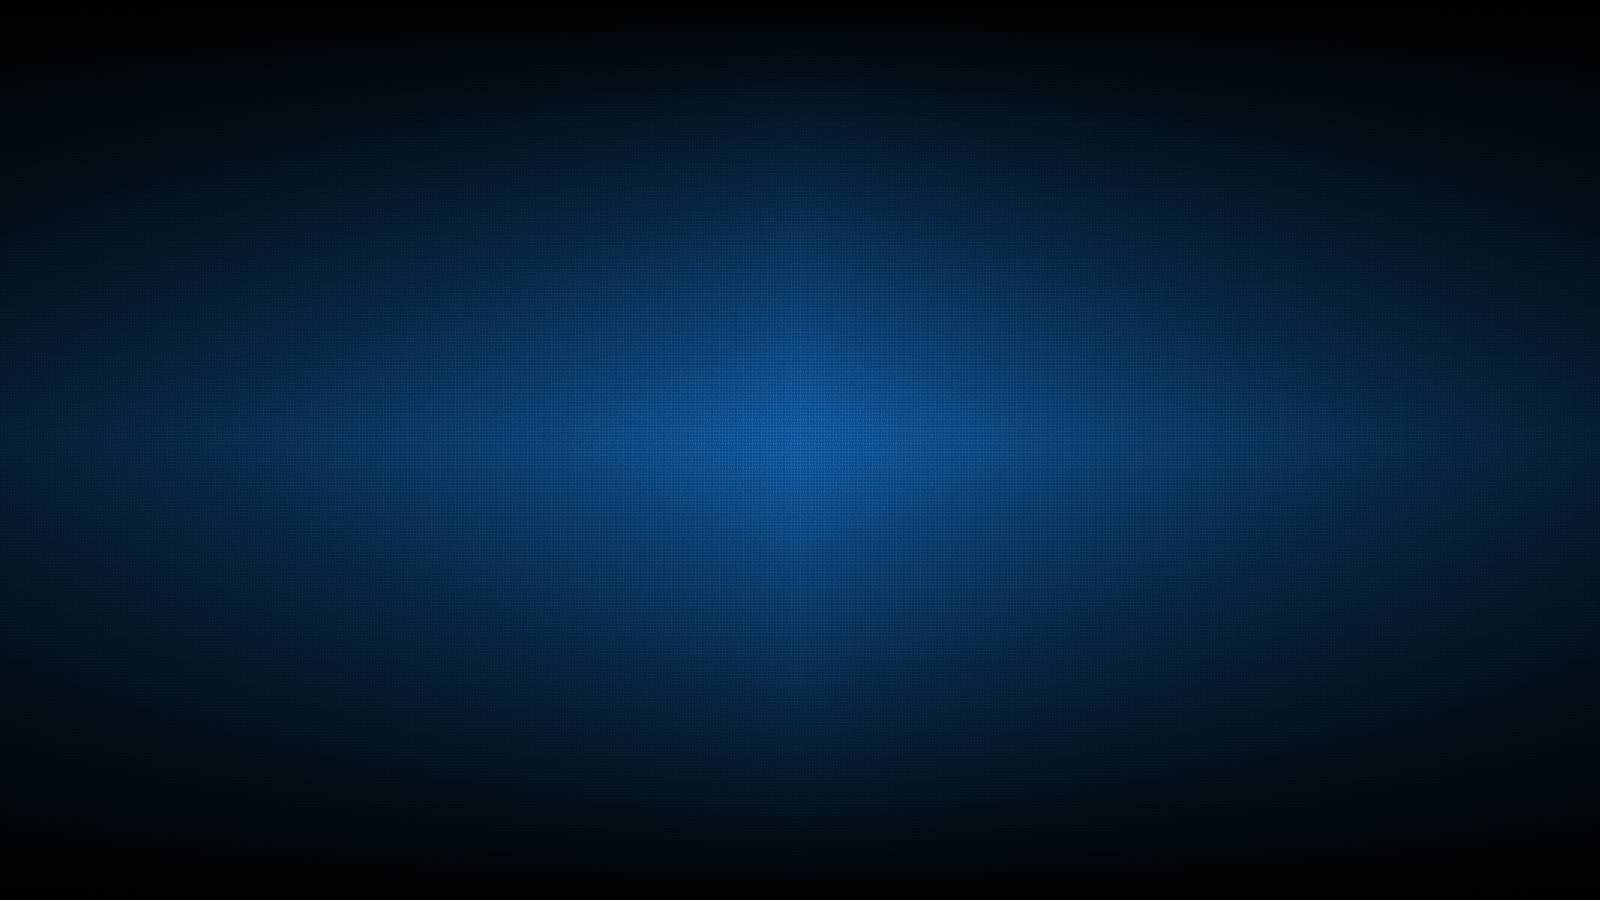 75 blue android wallpaper on wallpapersafari - Dark blue wallpaper hd for android ...